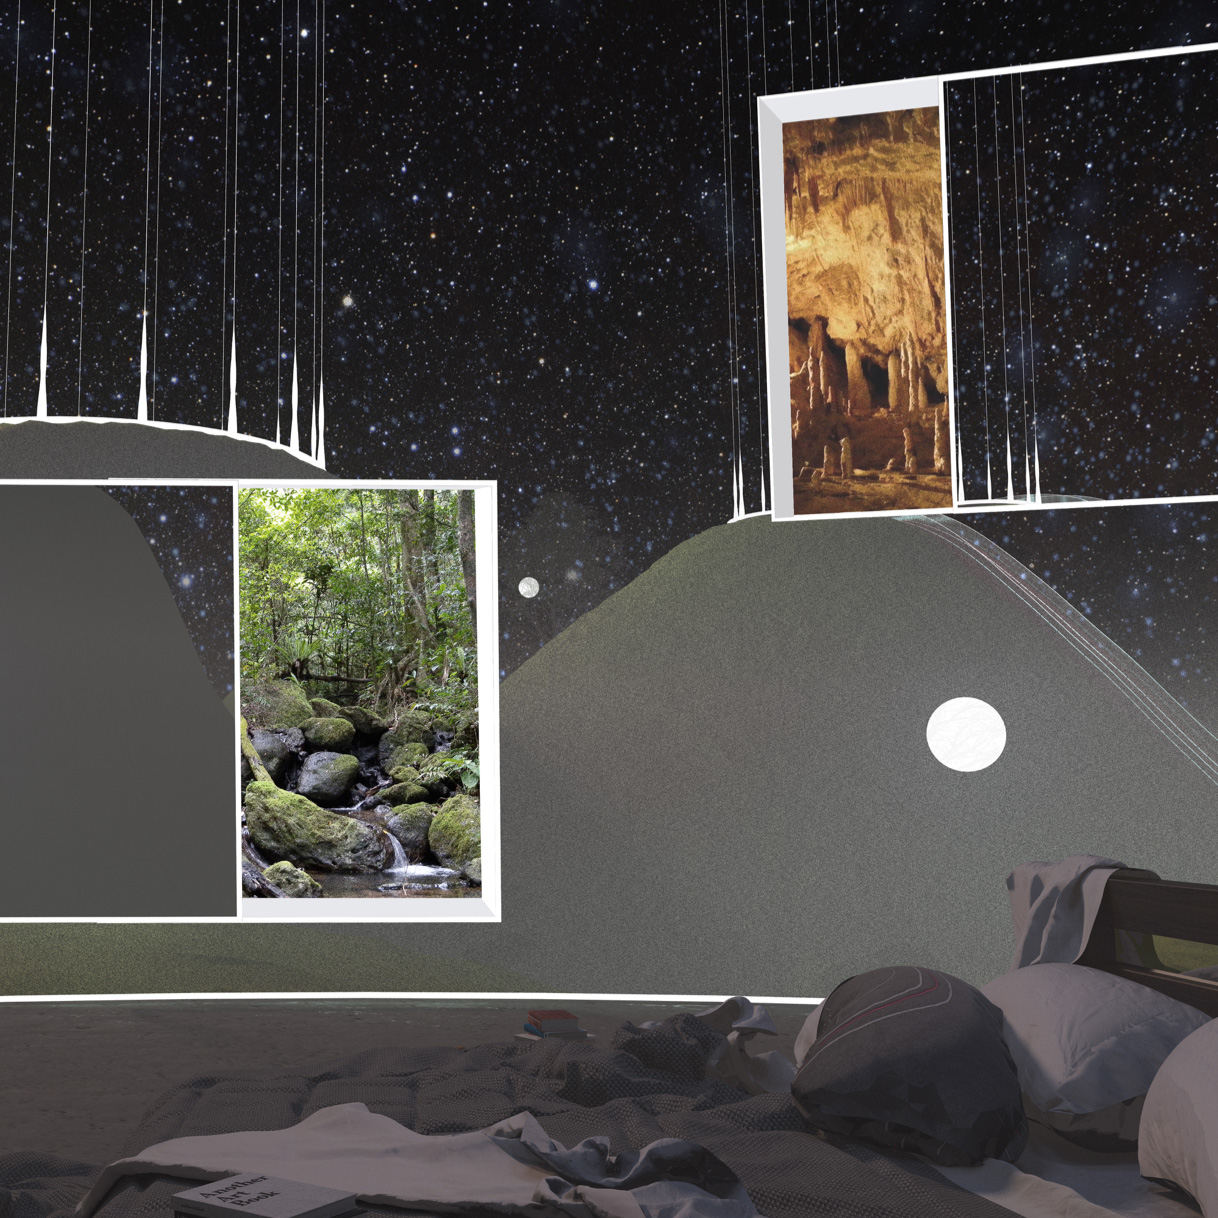 Bedroom with Overlapping Realities